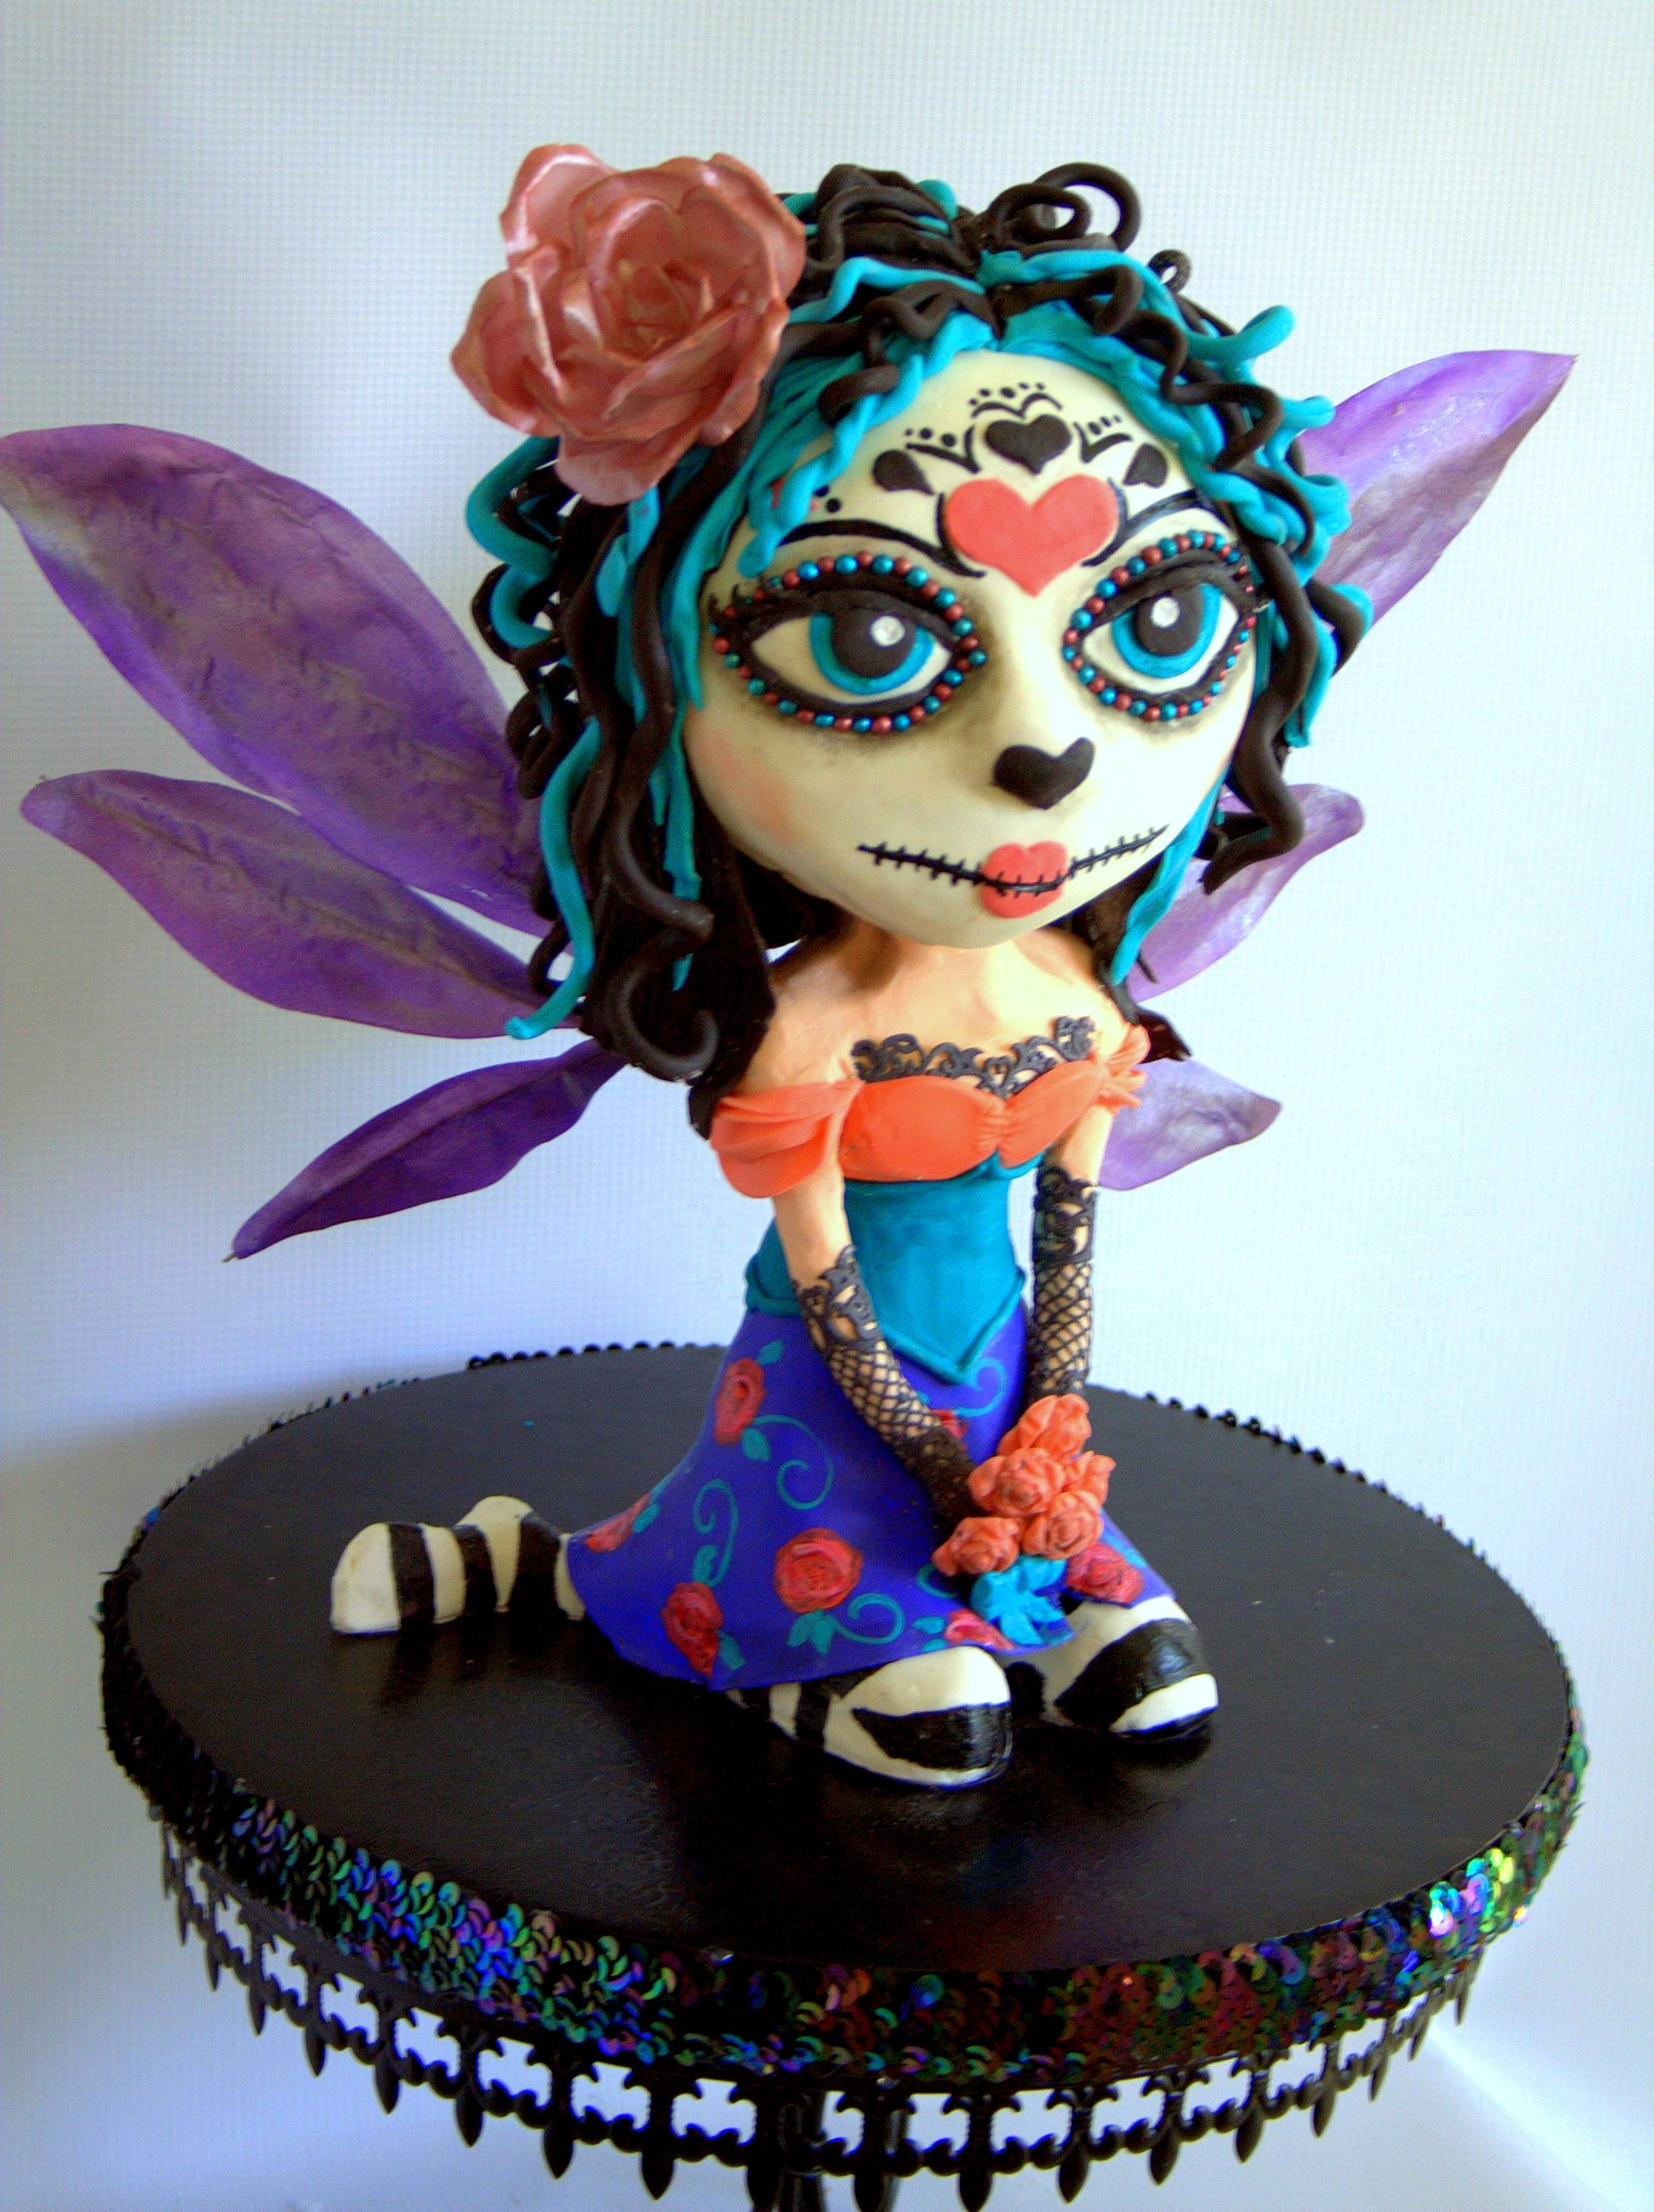 Fairy Sugar Skull Figurine